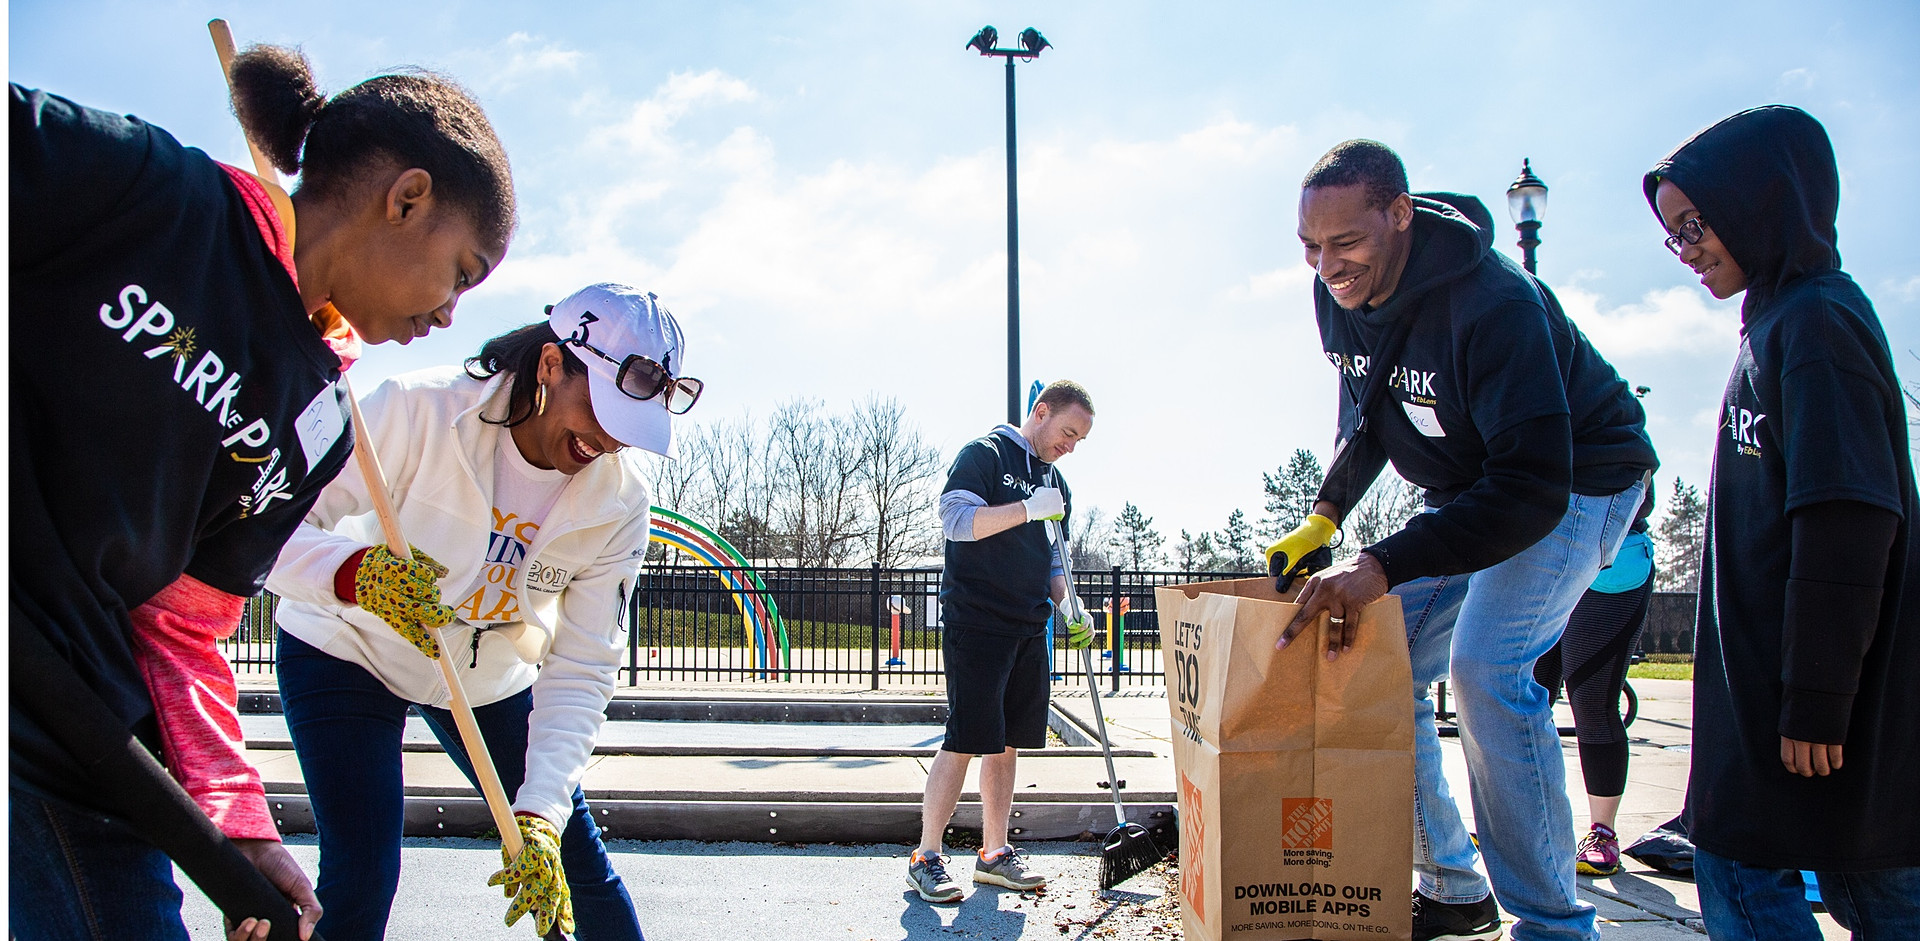 Representative Jahana Hayes helps out at the Spark the Park event in Willow St. Park in April 2019.